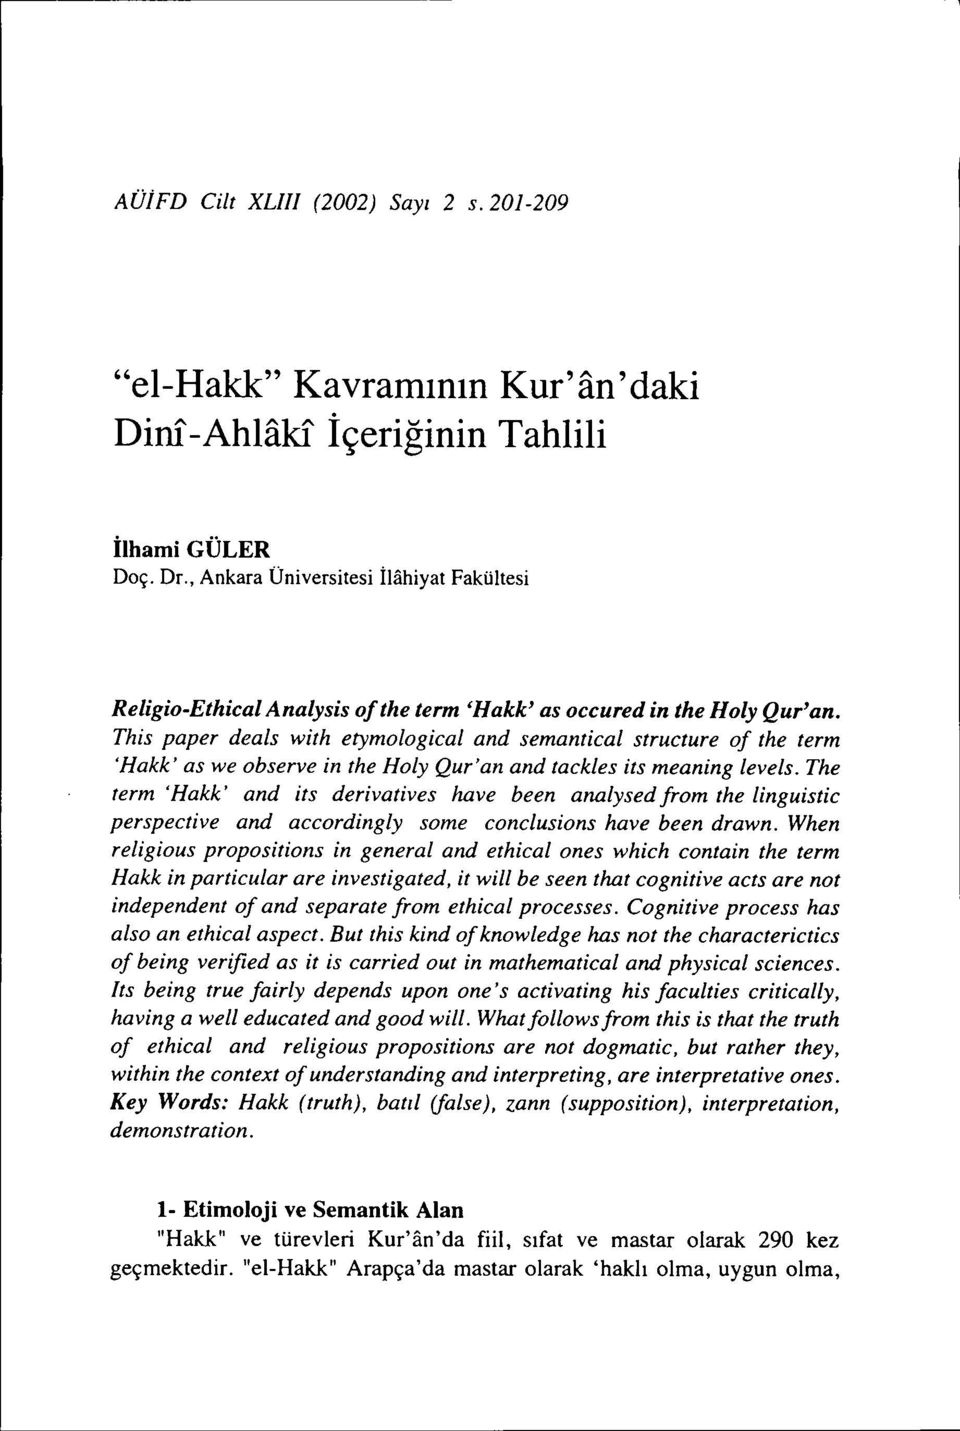 This paper deals with etymological and semantical structure of the term 'Hakk' as we observe in the Holy Qur'an and taekles its meaning leve/s.